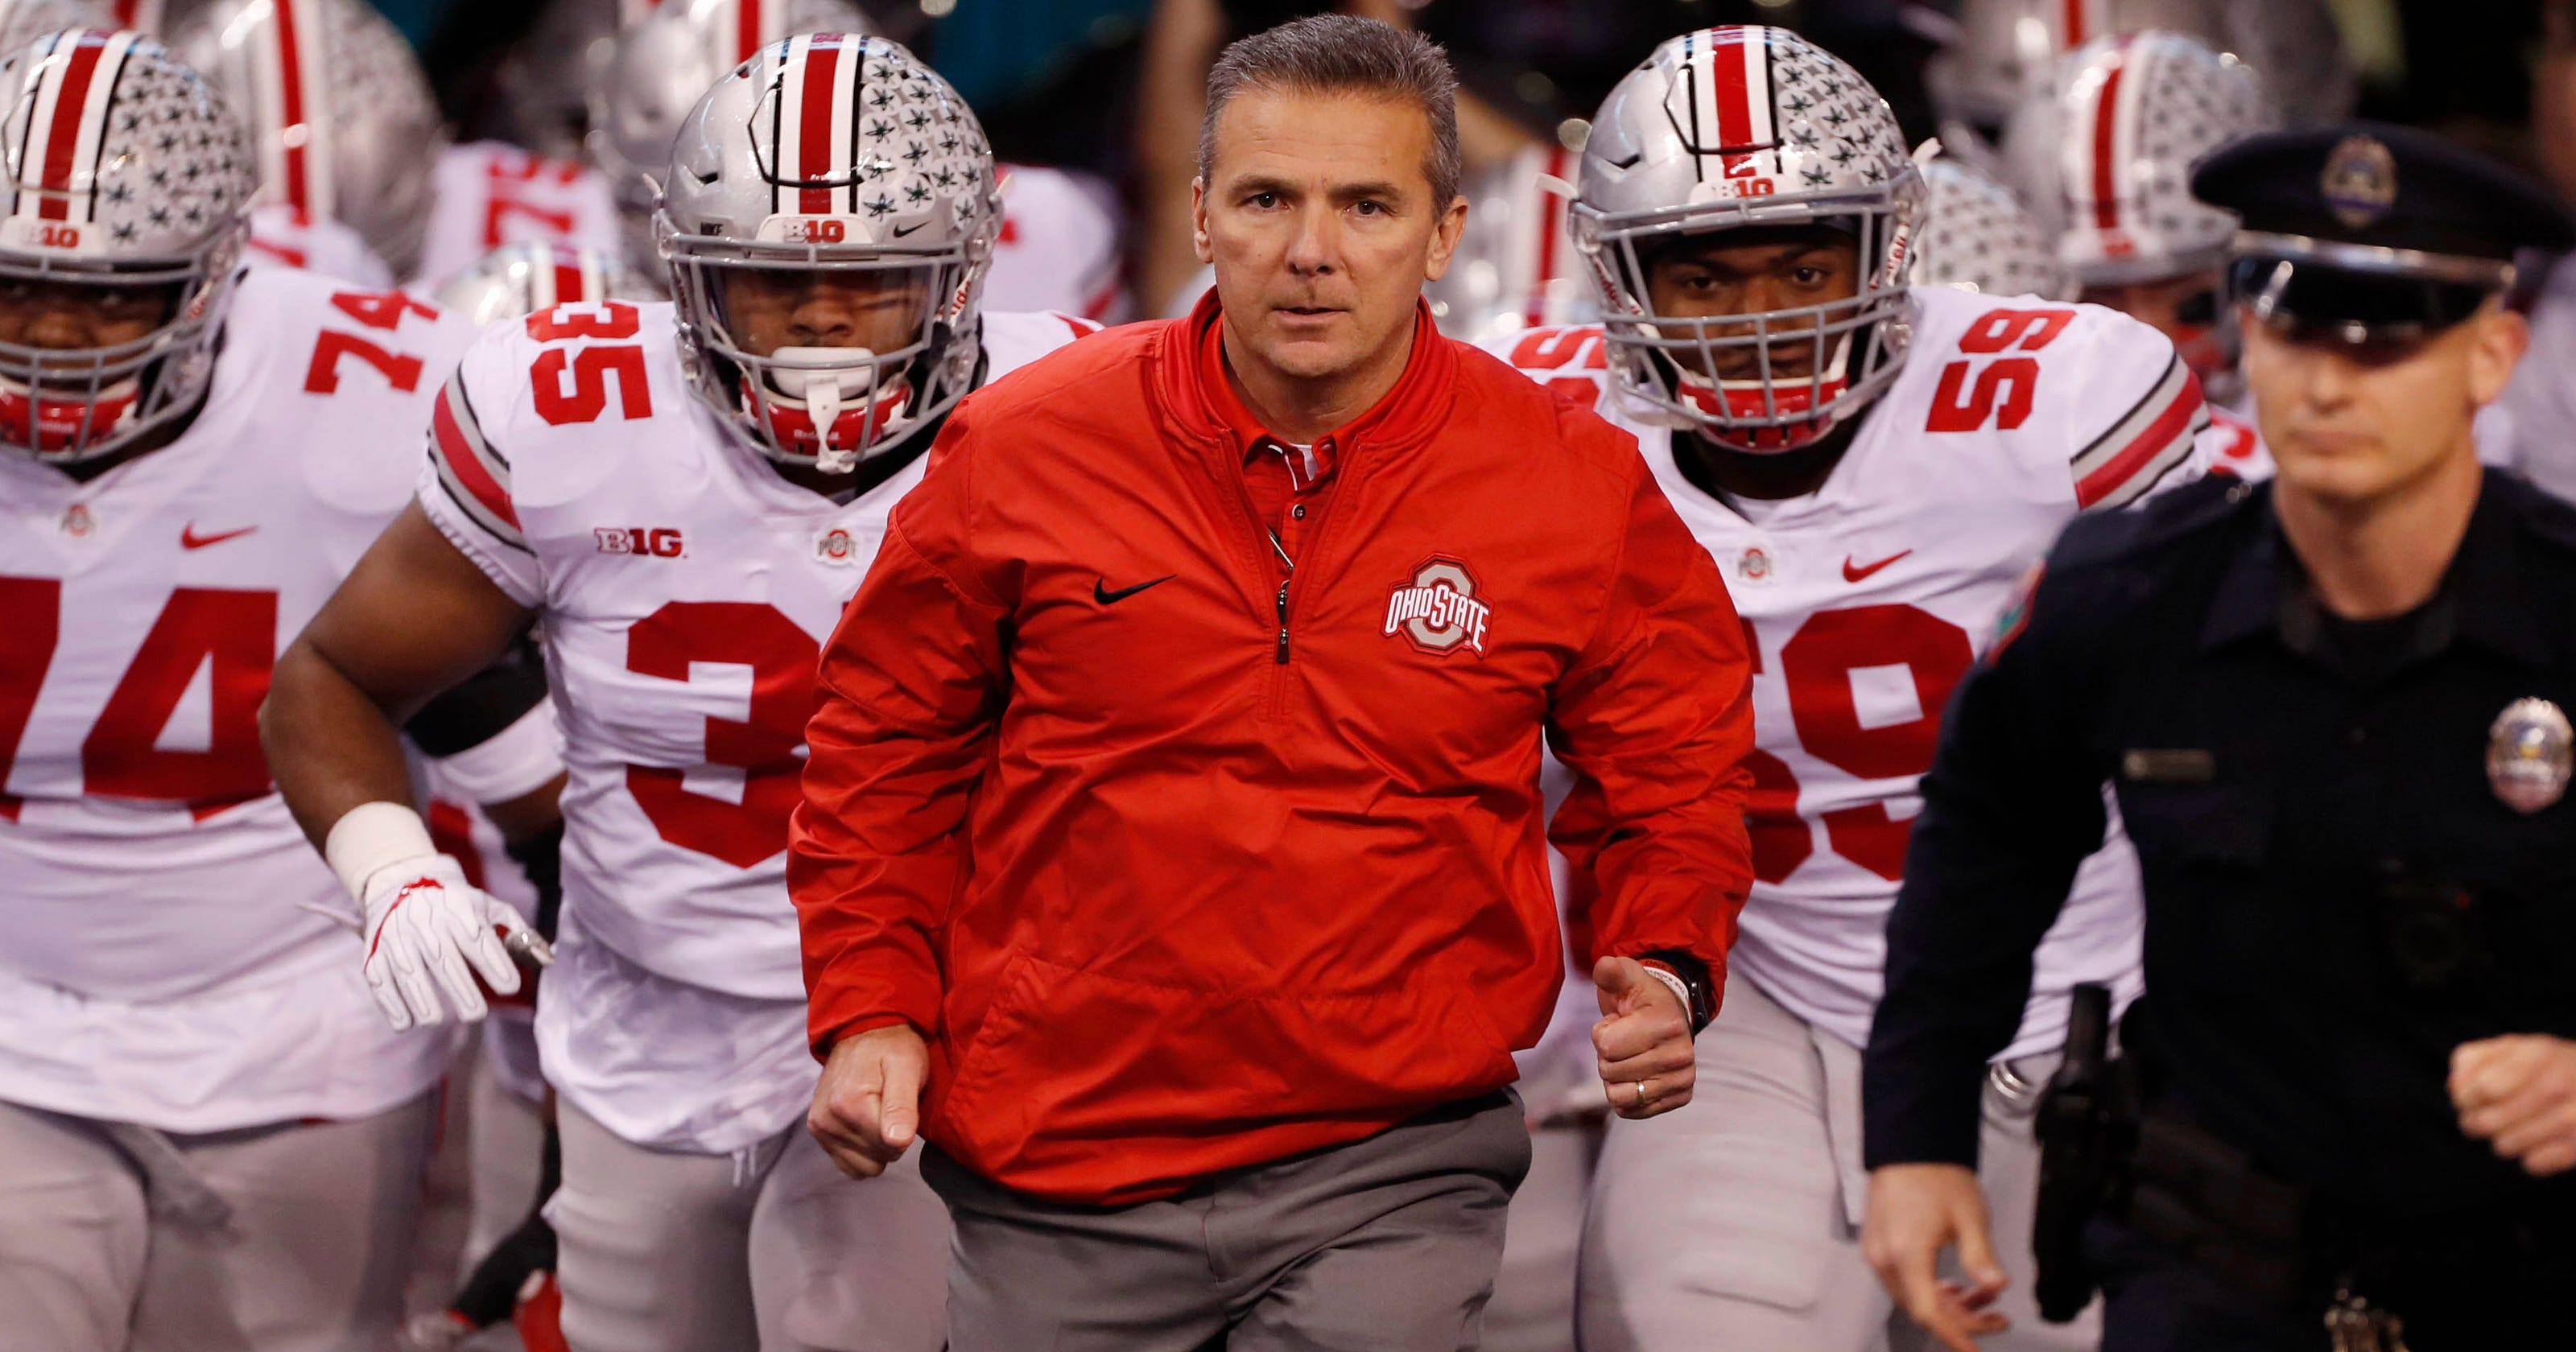 Ohio State Football Coach Urban Meyer Suspended Three Games